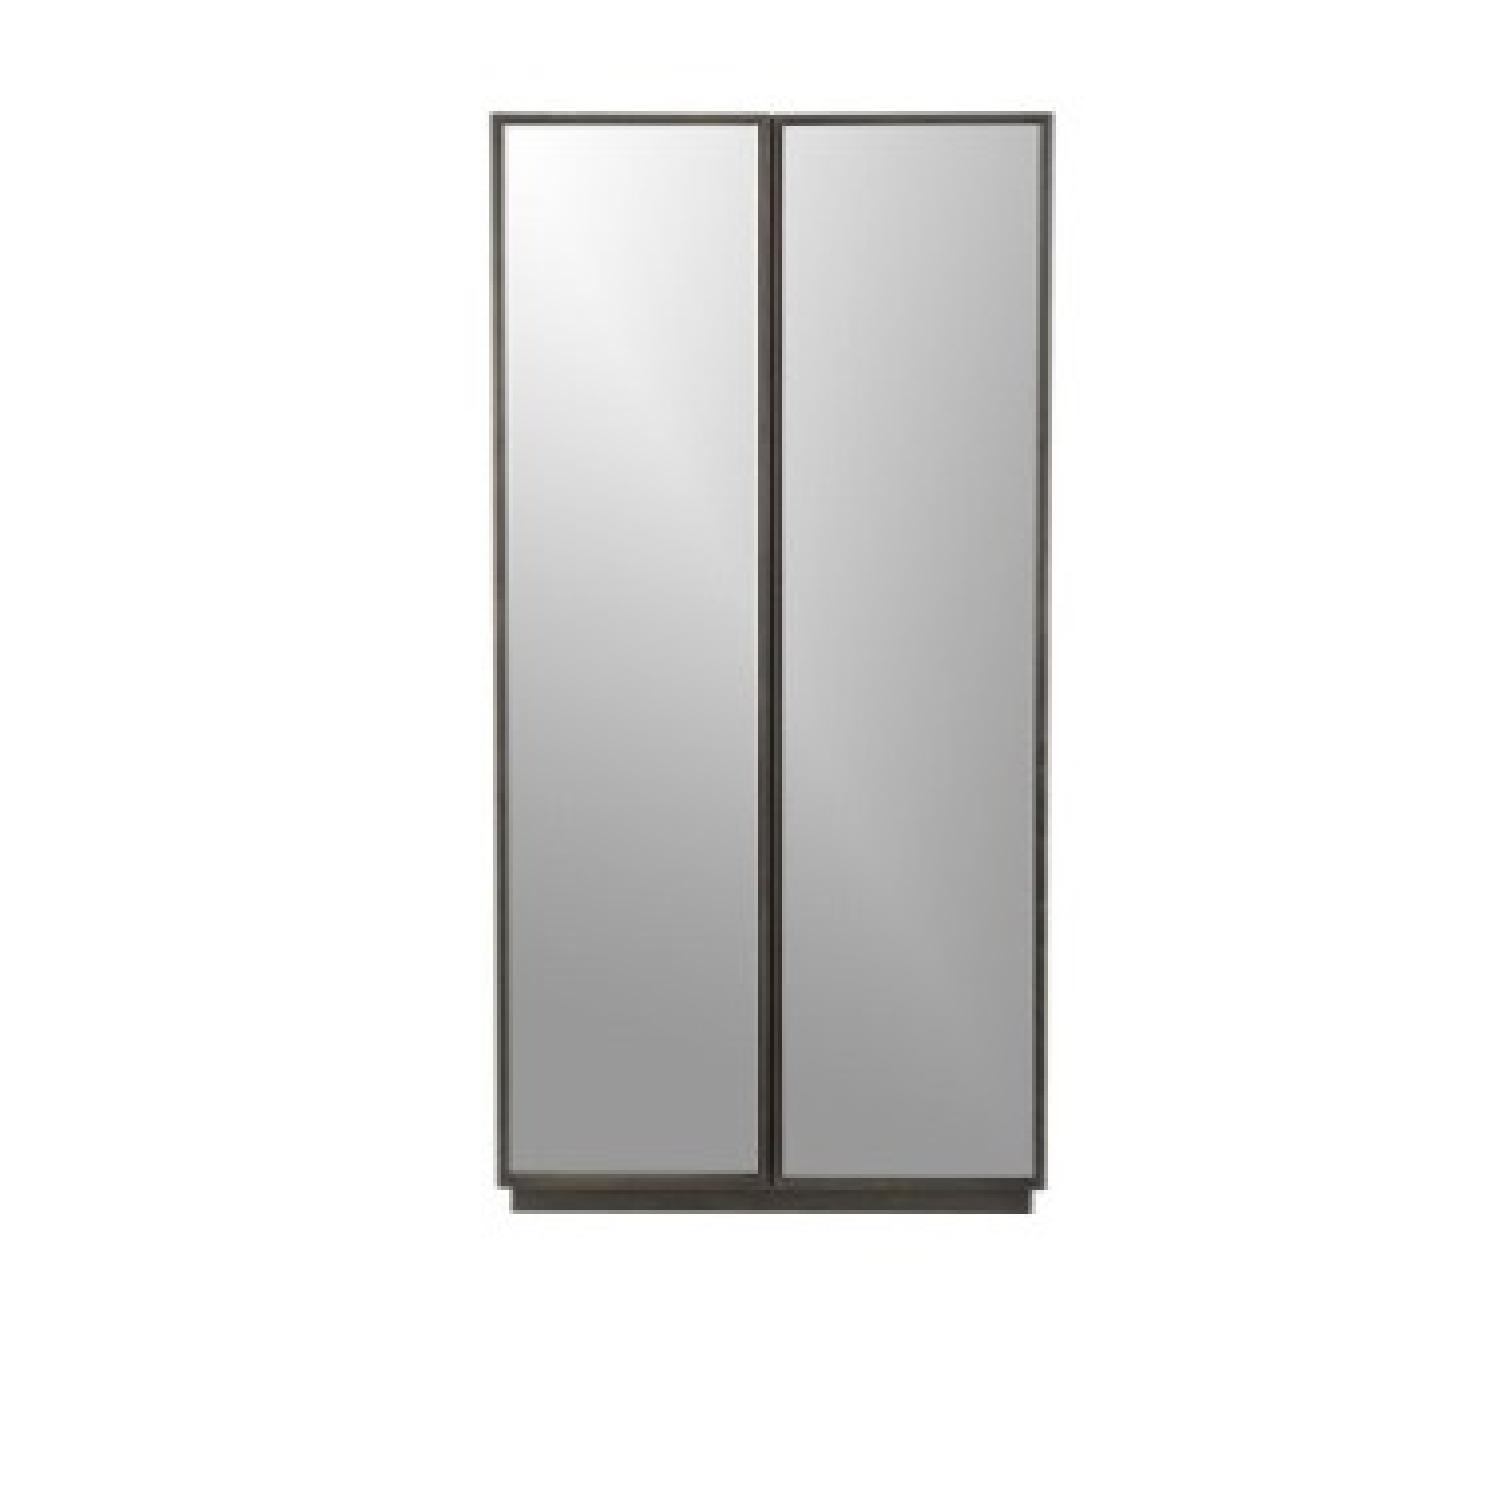 CB2 Reflections Mirrored Armoire - image-9